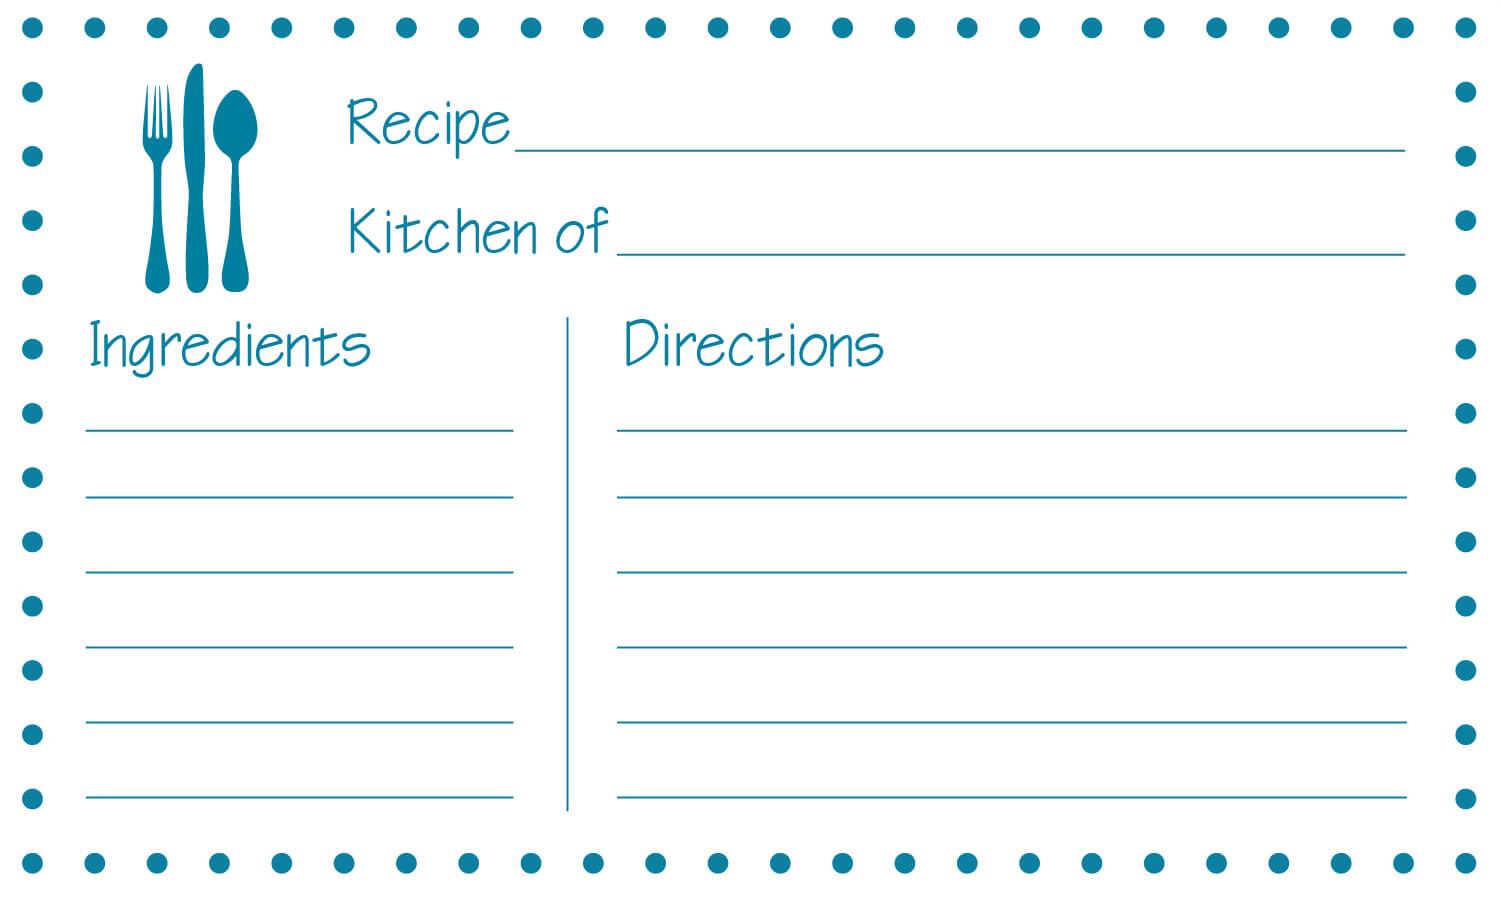 015 Template Ideas Free Editable Recipe Card Templates For Within 4X6 Photo Card Template Free